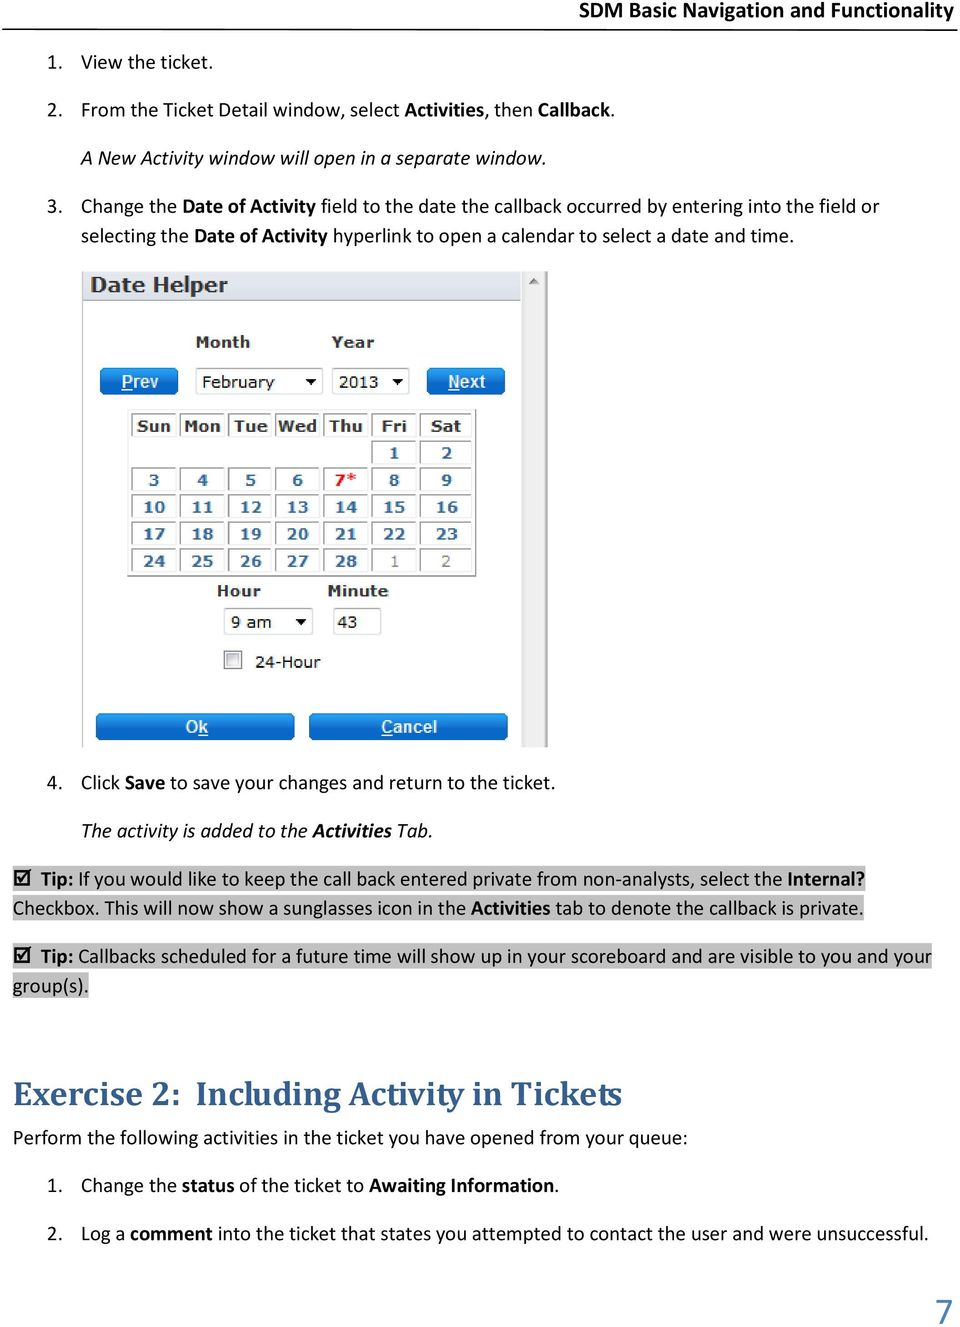 Click Save to save your changes and return to the ticket. The activity is added to the Activities Tab.